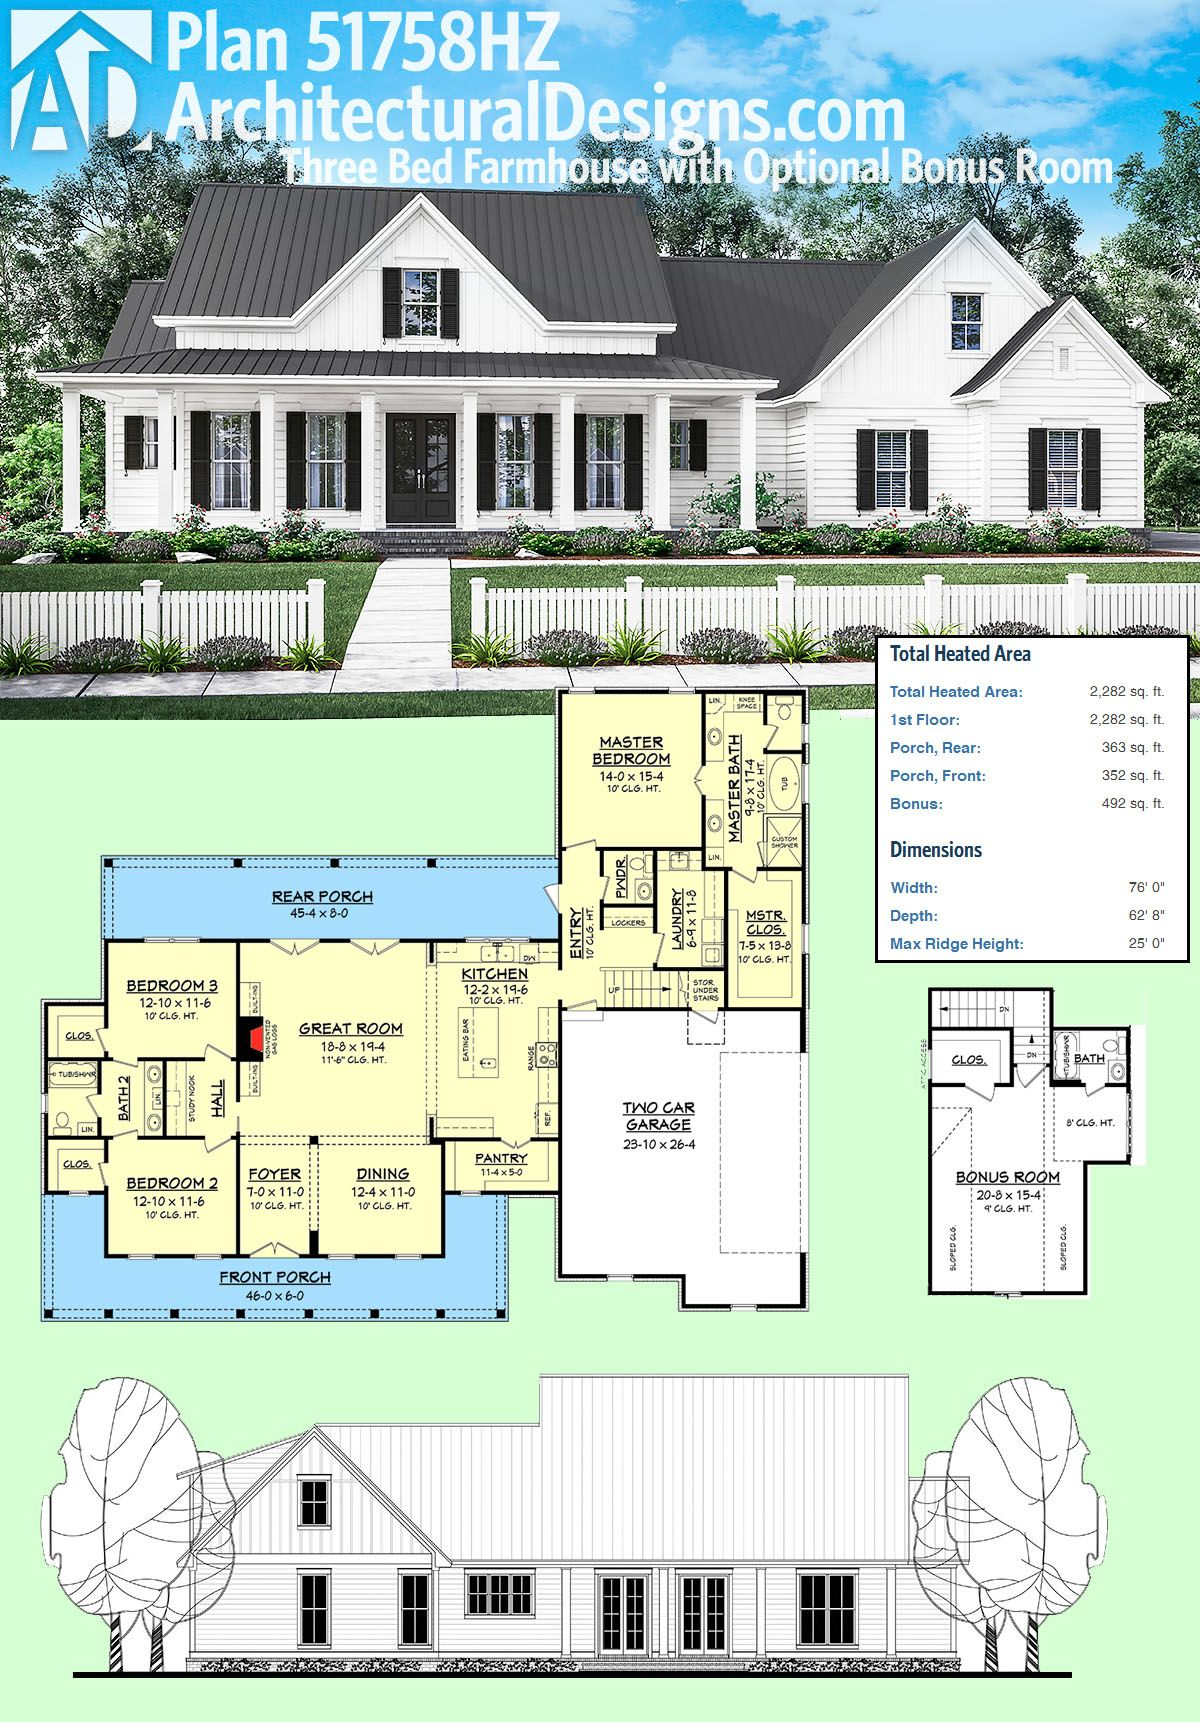 Plan 51758HZ Three Bed Farmhouse with Optional Bonus Room